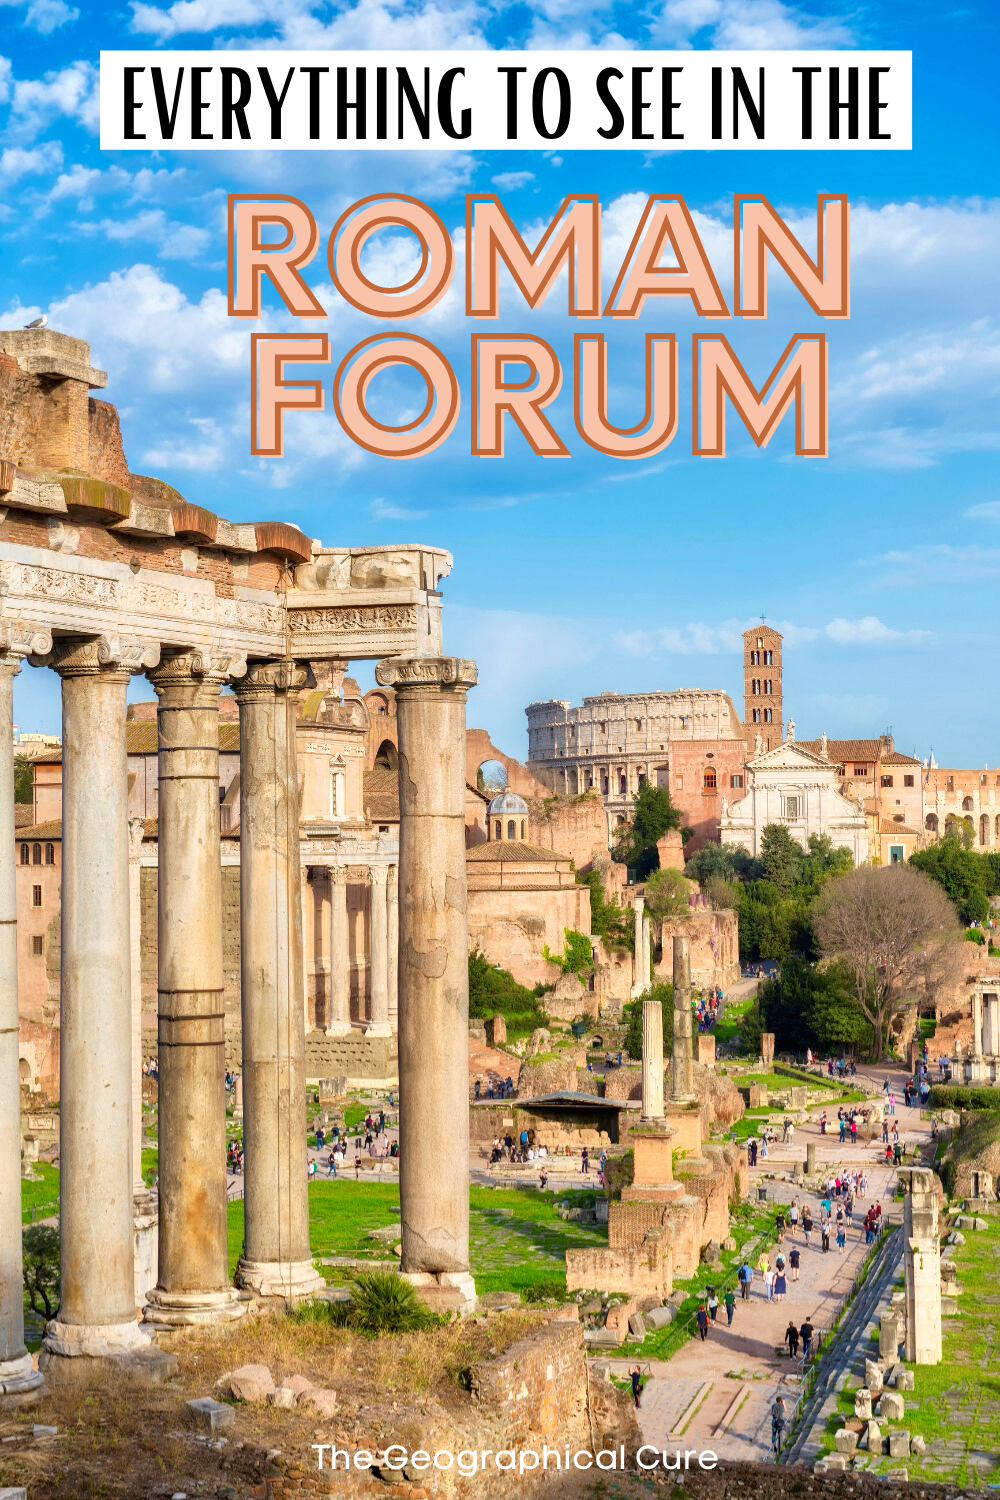 Rome travel guide: everything to see inside The Roman Forum